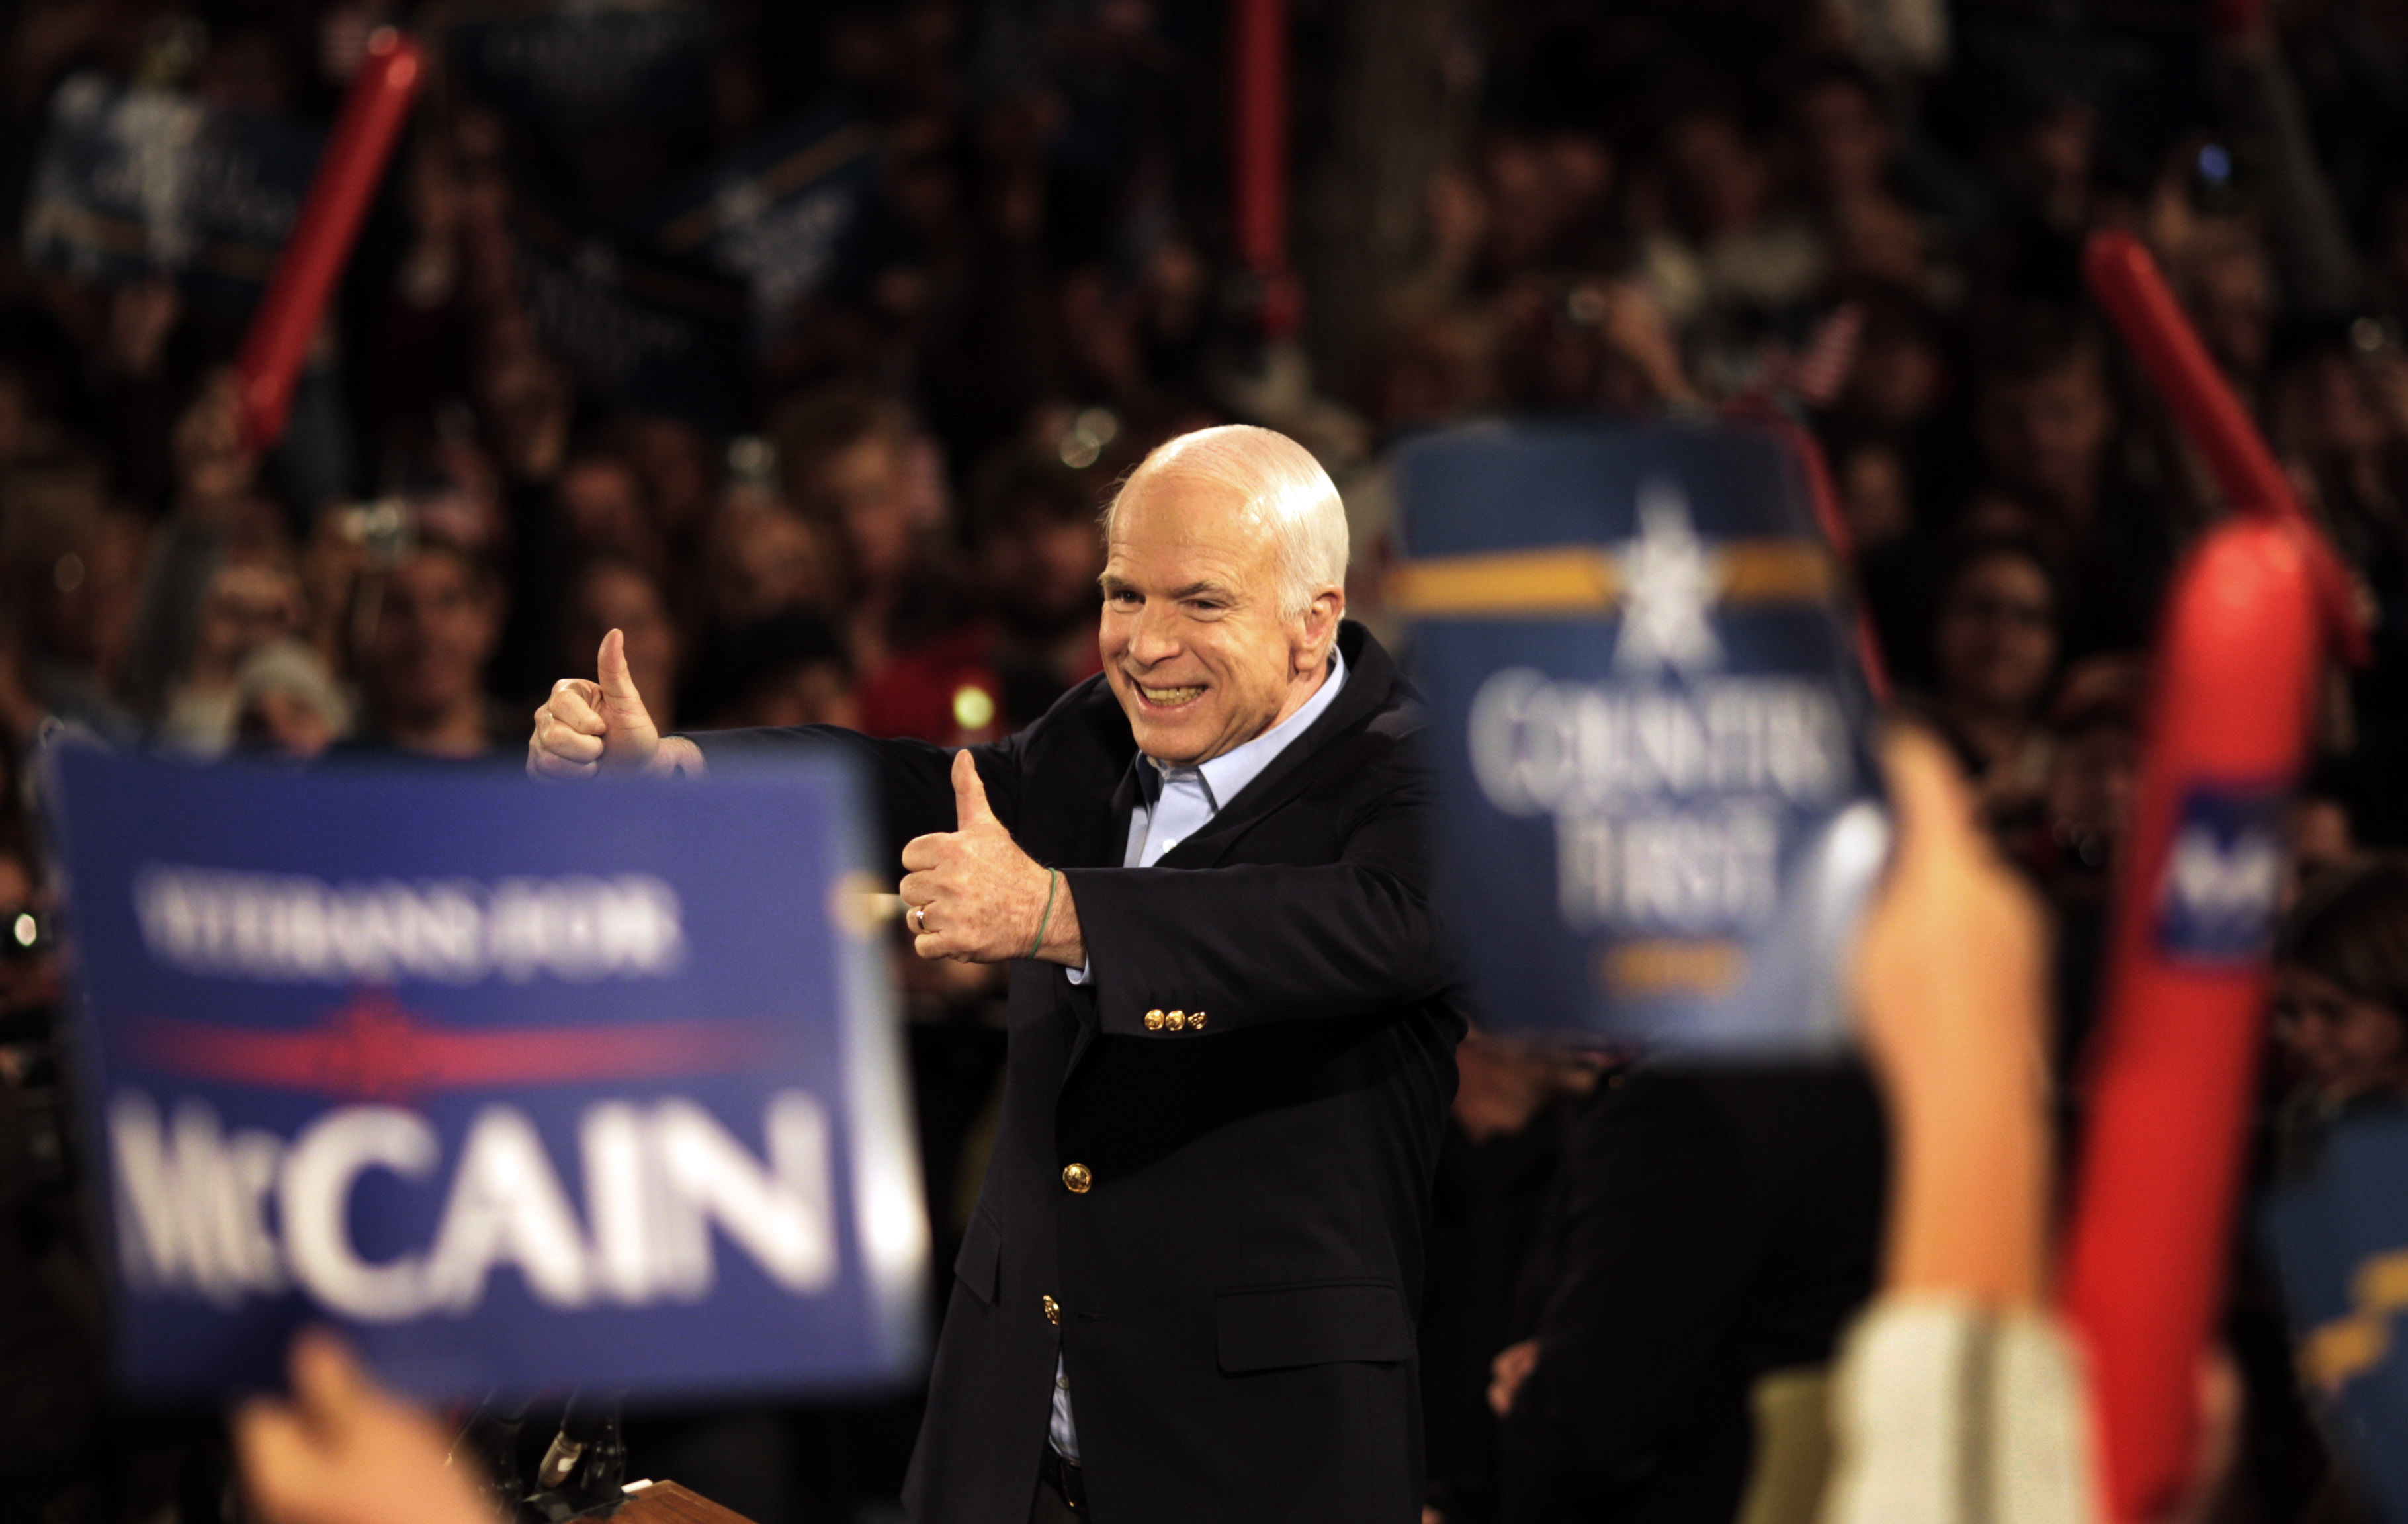 John McCain, 'maverick' of the Senate and former POW, dies at 81